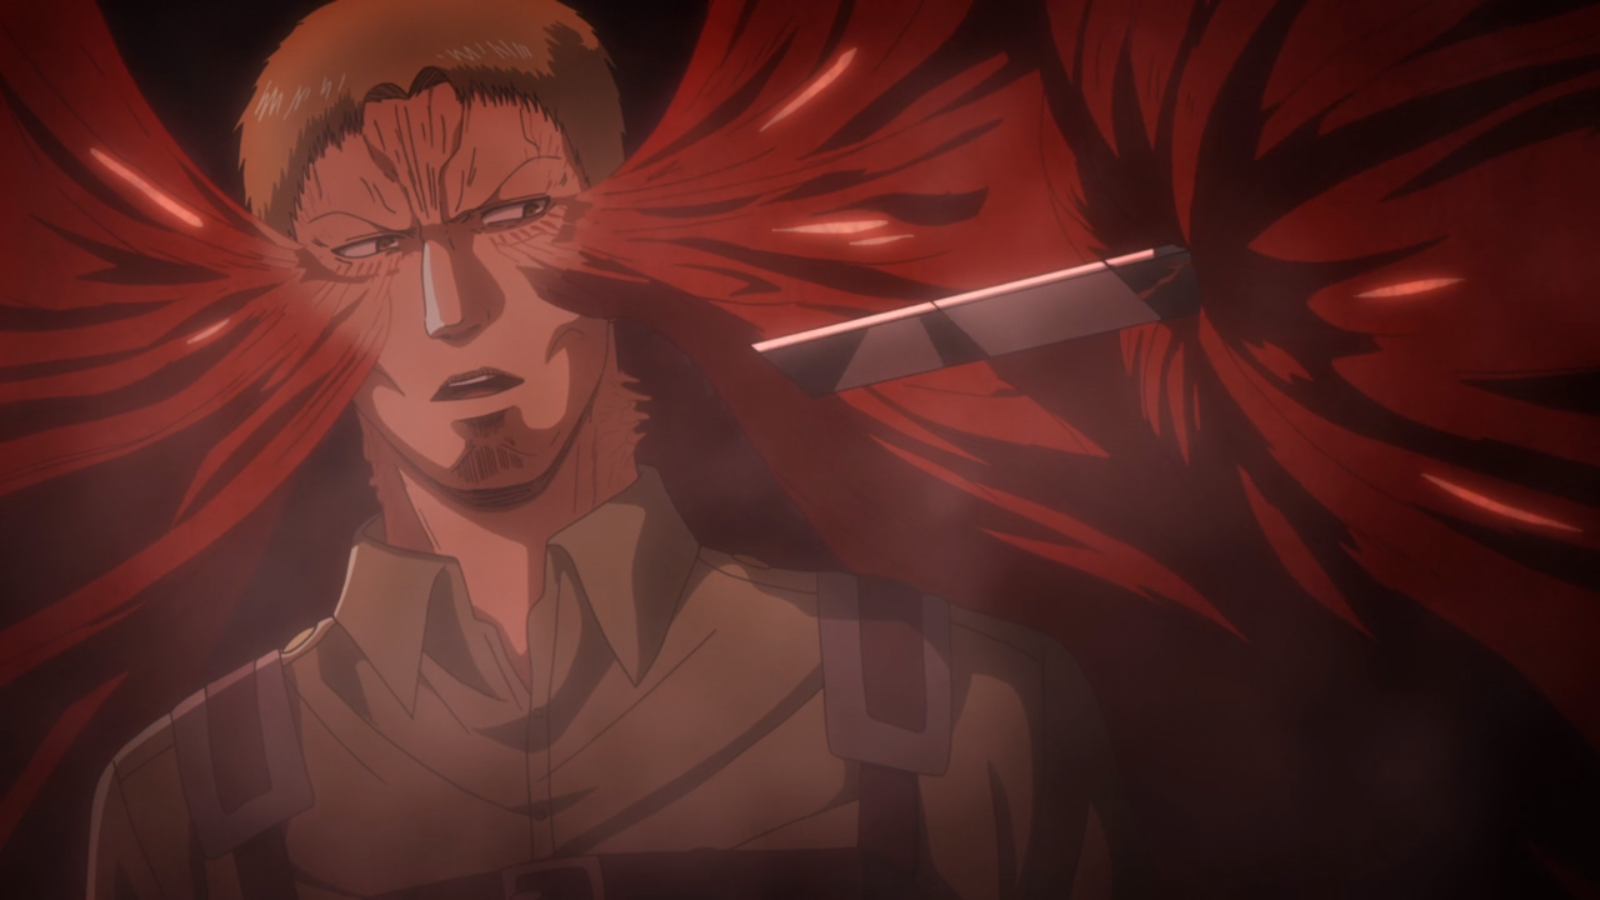 Category Images Of Reiner Braun Anime Attack On Titan Wiki Fandom